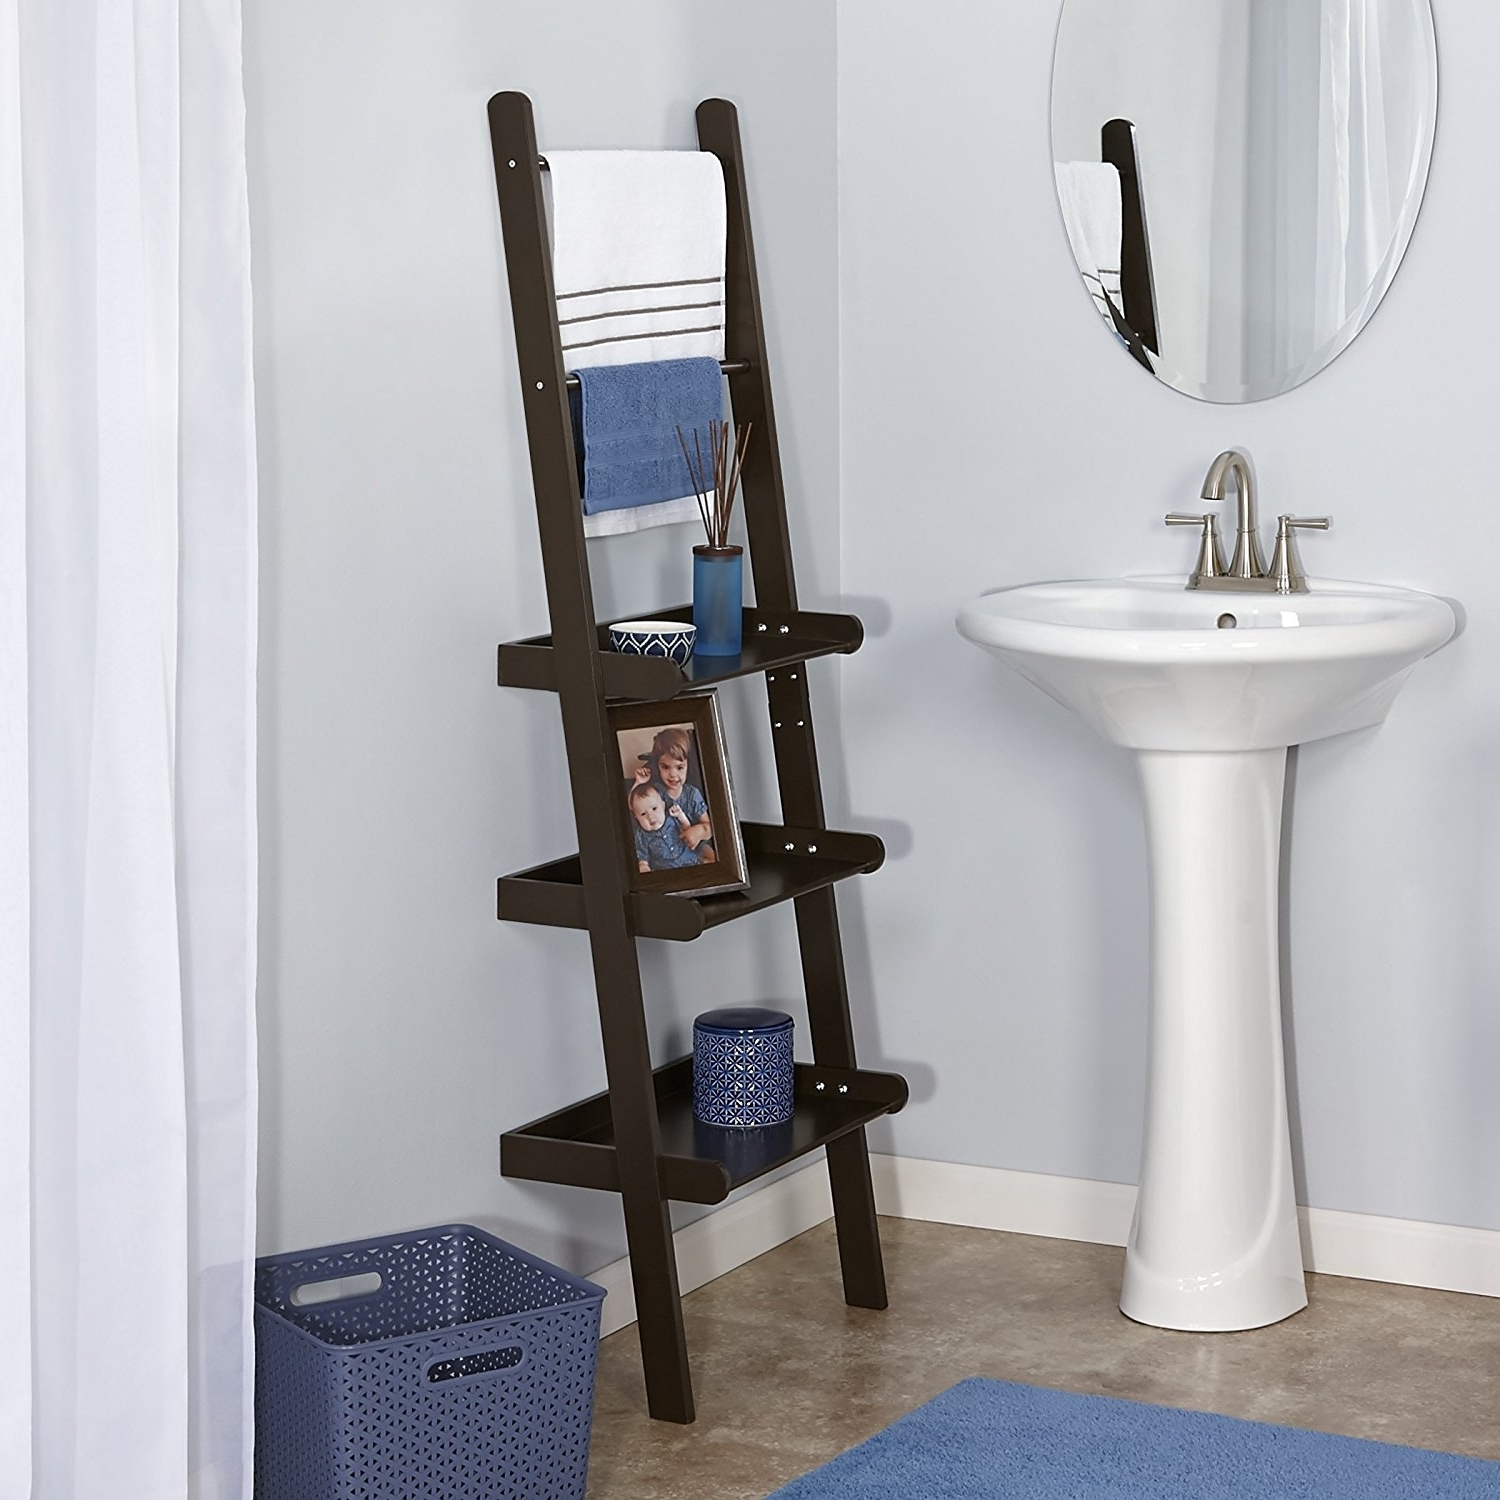 Widely Used Ladder Shelves Pertaining To Amazon: Riverridge Home Ladder Shelf, Espresso: Home & Kitchen (View 15 of 15)